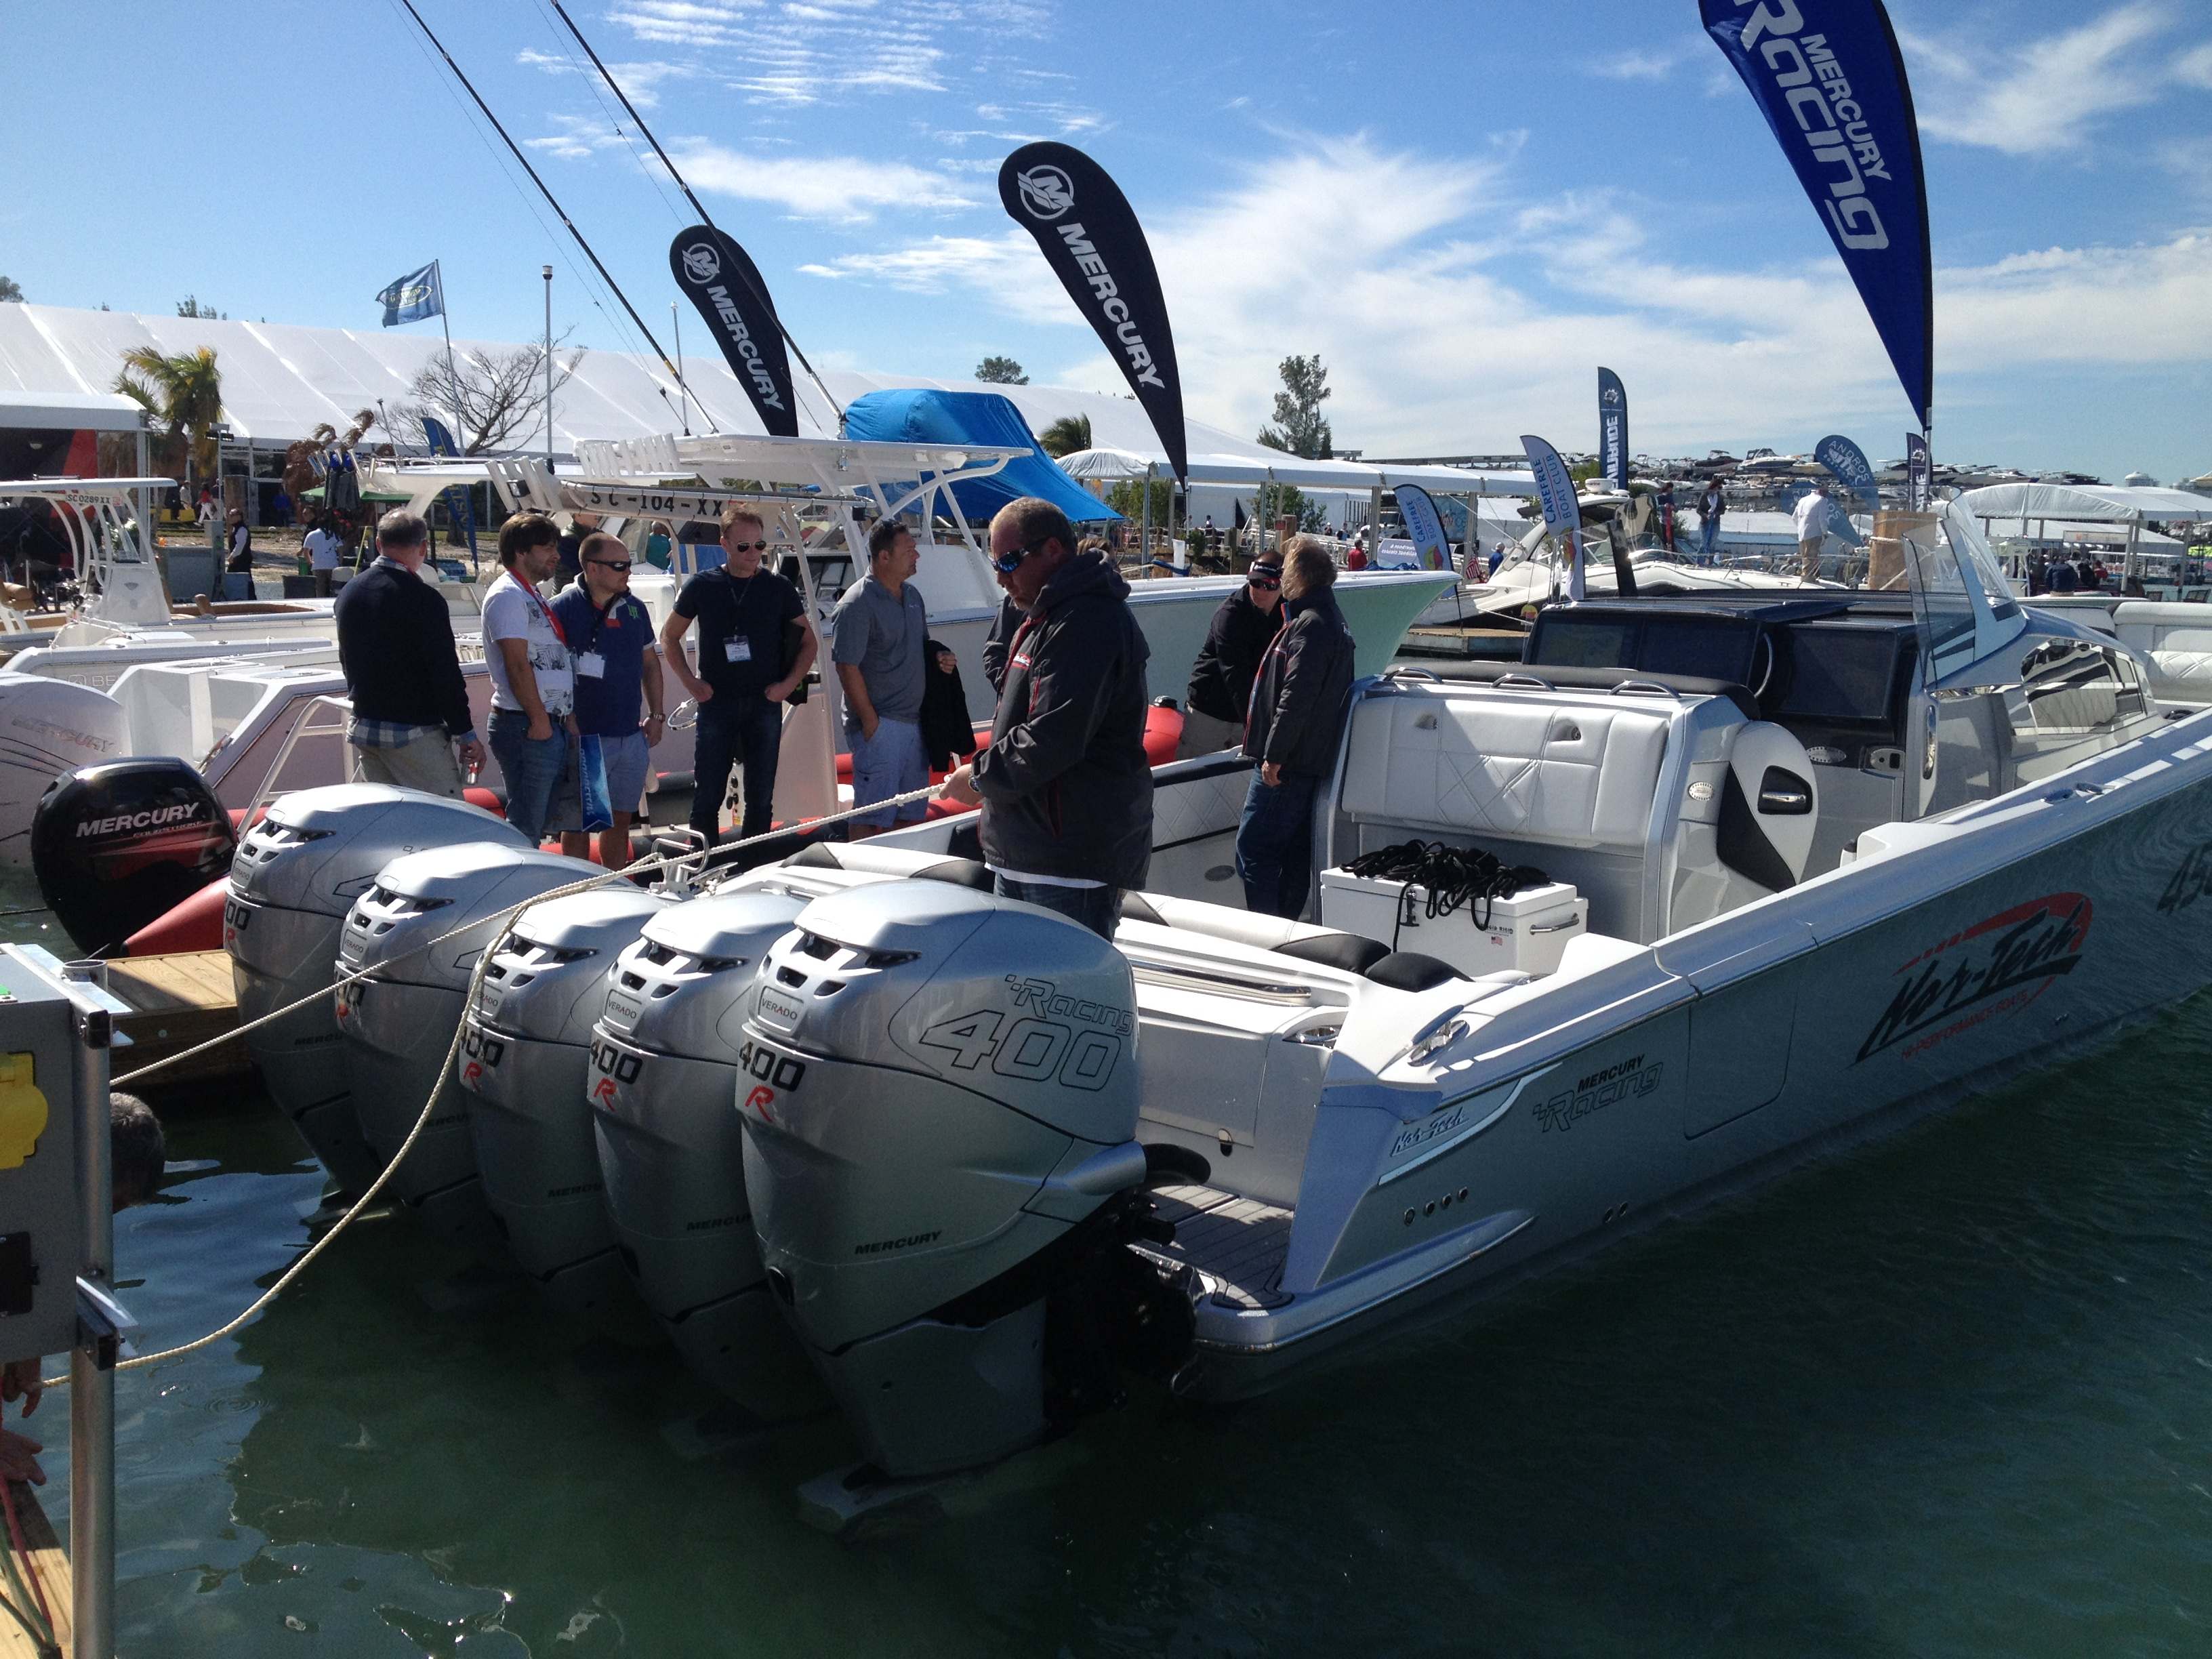 10 reasons to visit the miami international boat show - Miami boat show ...